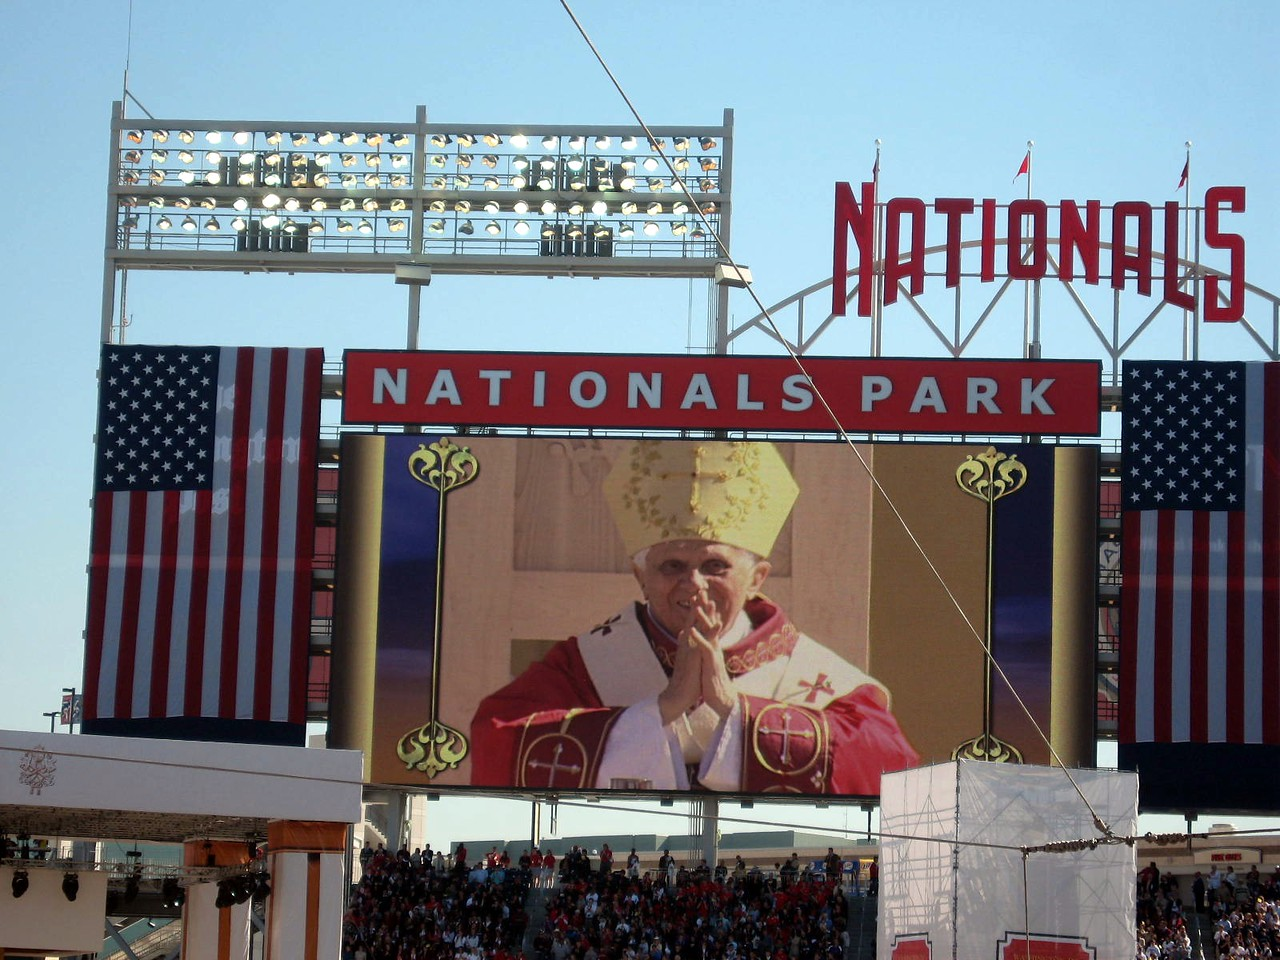 Pope Benedict XVI responds to the crowd's welcome